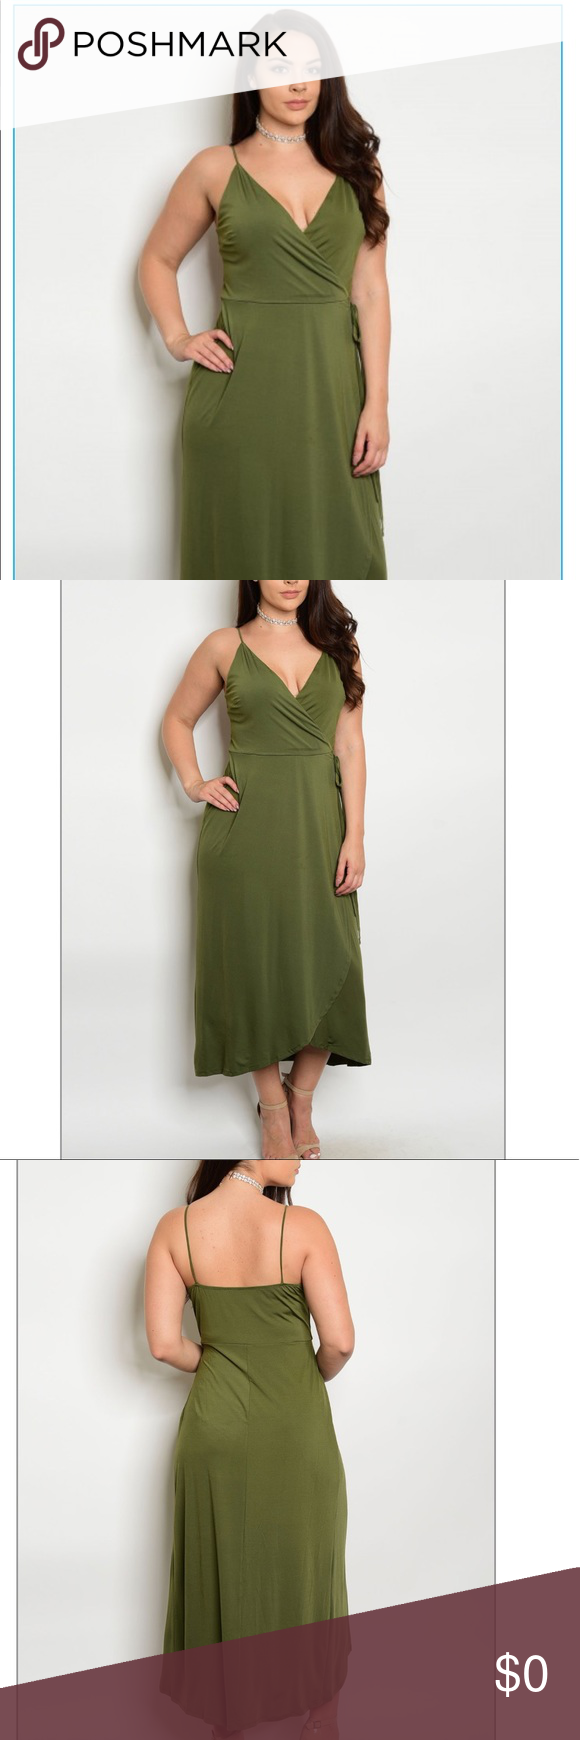 Plus size olive dress coming soonuc uc uc will be listing this